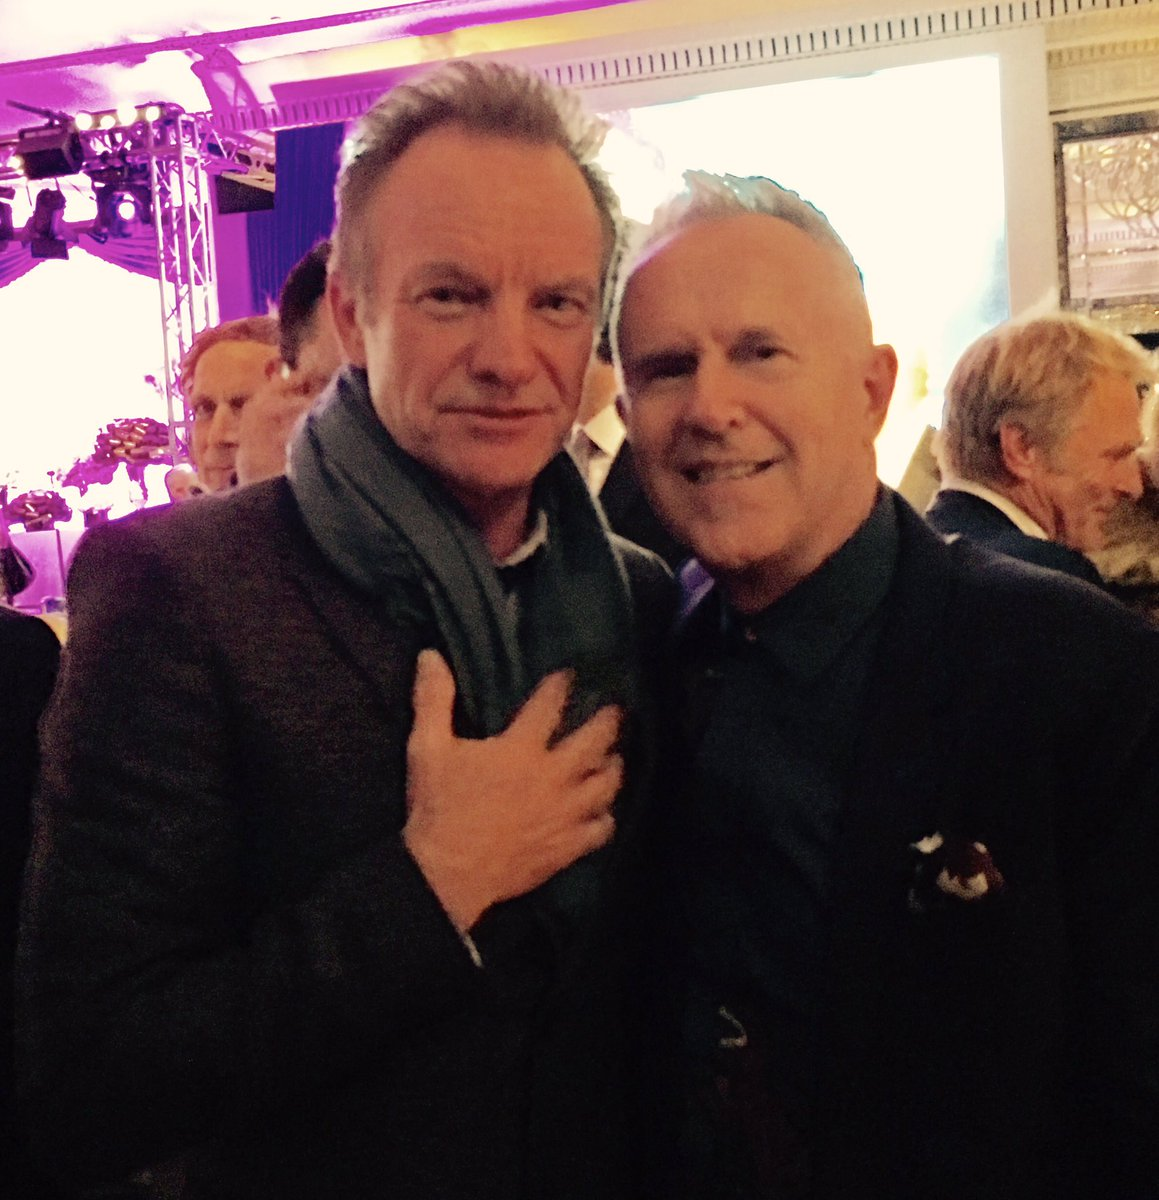 Sting and Hojo @bmi awards @OfficialSting https://t.co/eyC5tL0vhj